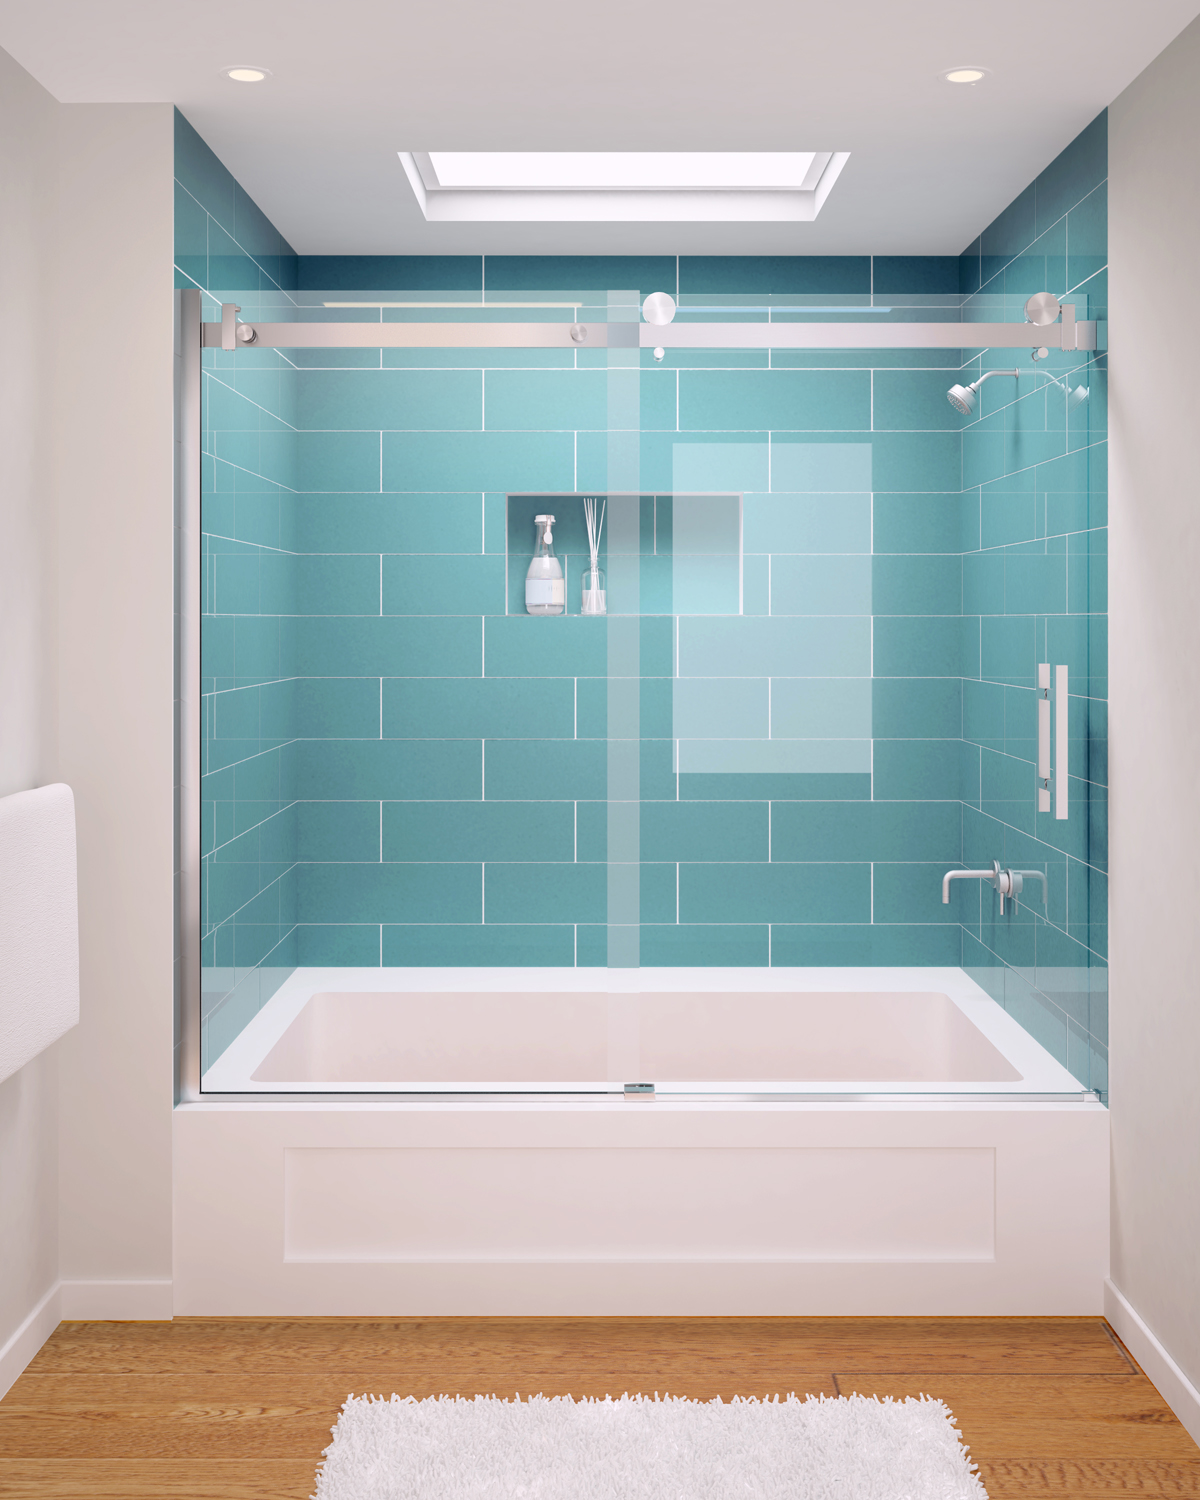 Relatively Frameless vs Semi-Frameless vs Framed Shower Enclosures UG56